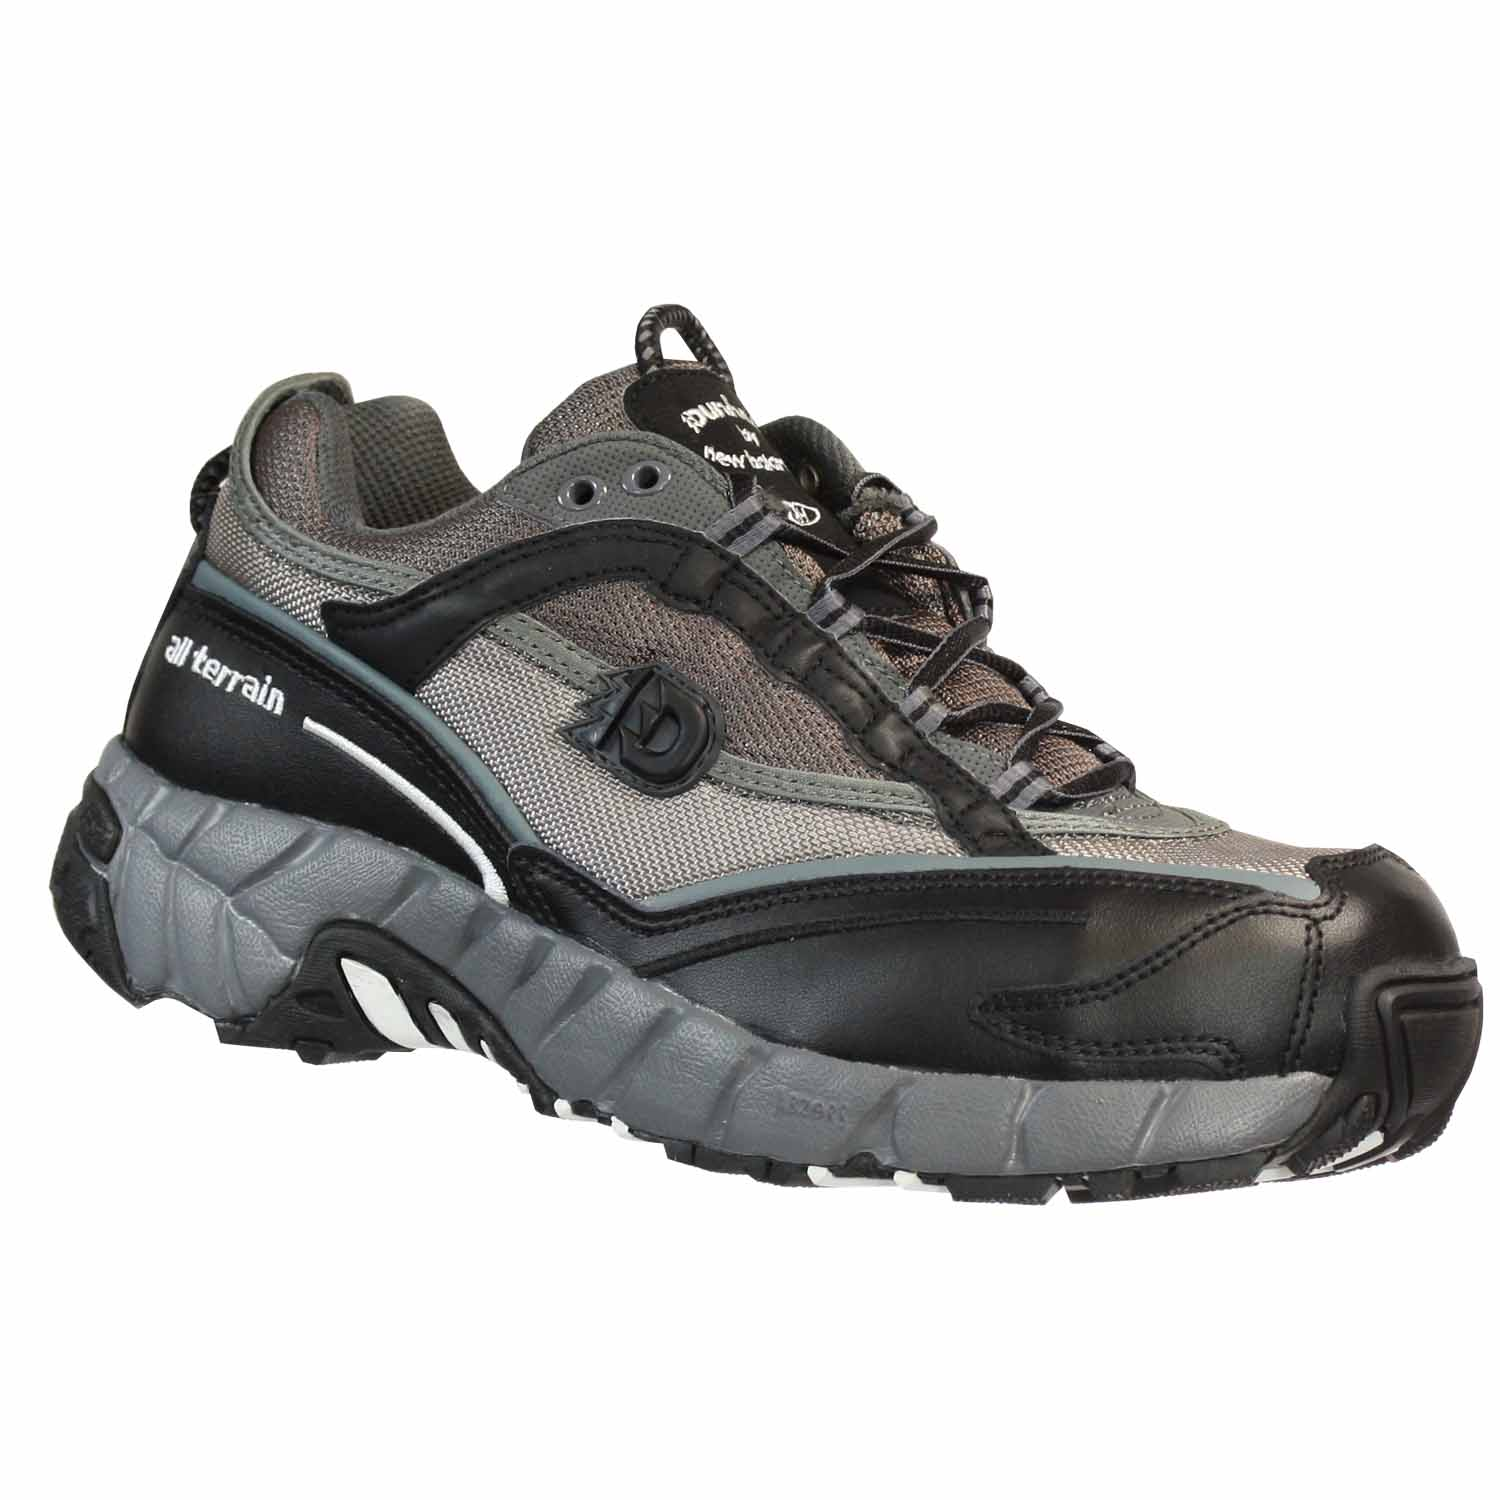 Dunham New Balance 8702 Mens Steel Toe Athletic Safety Shoes EH 8 D by Dunham